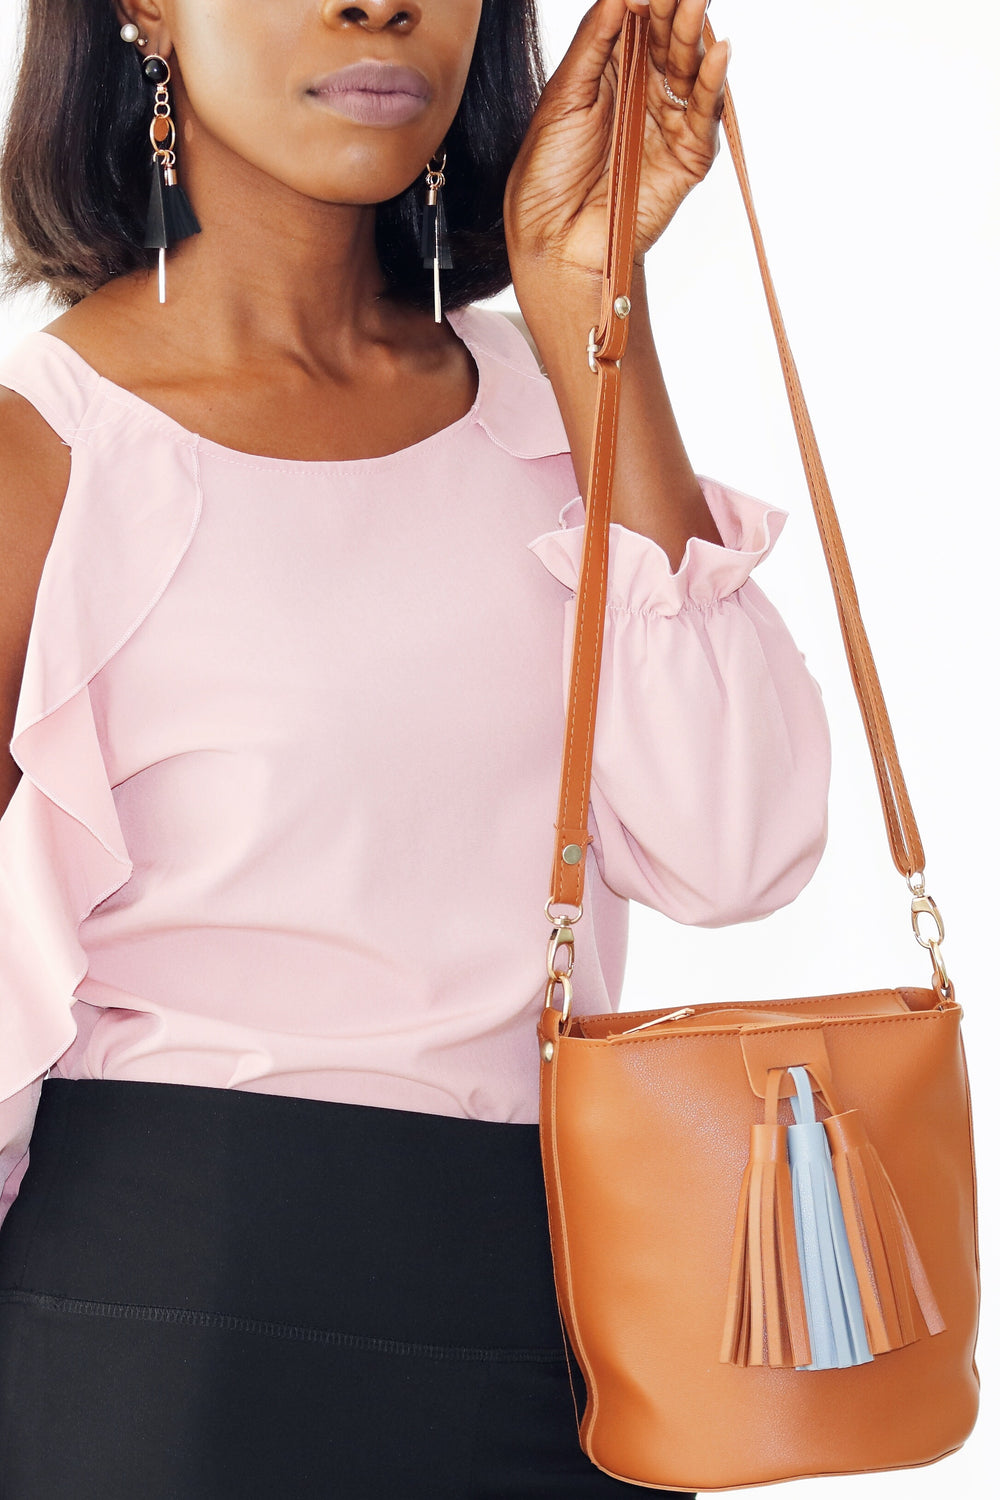 The Fiona Bucket Bag